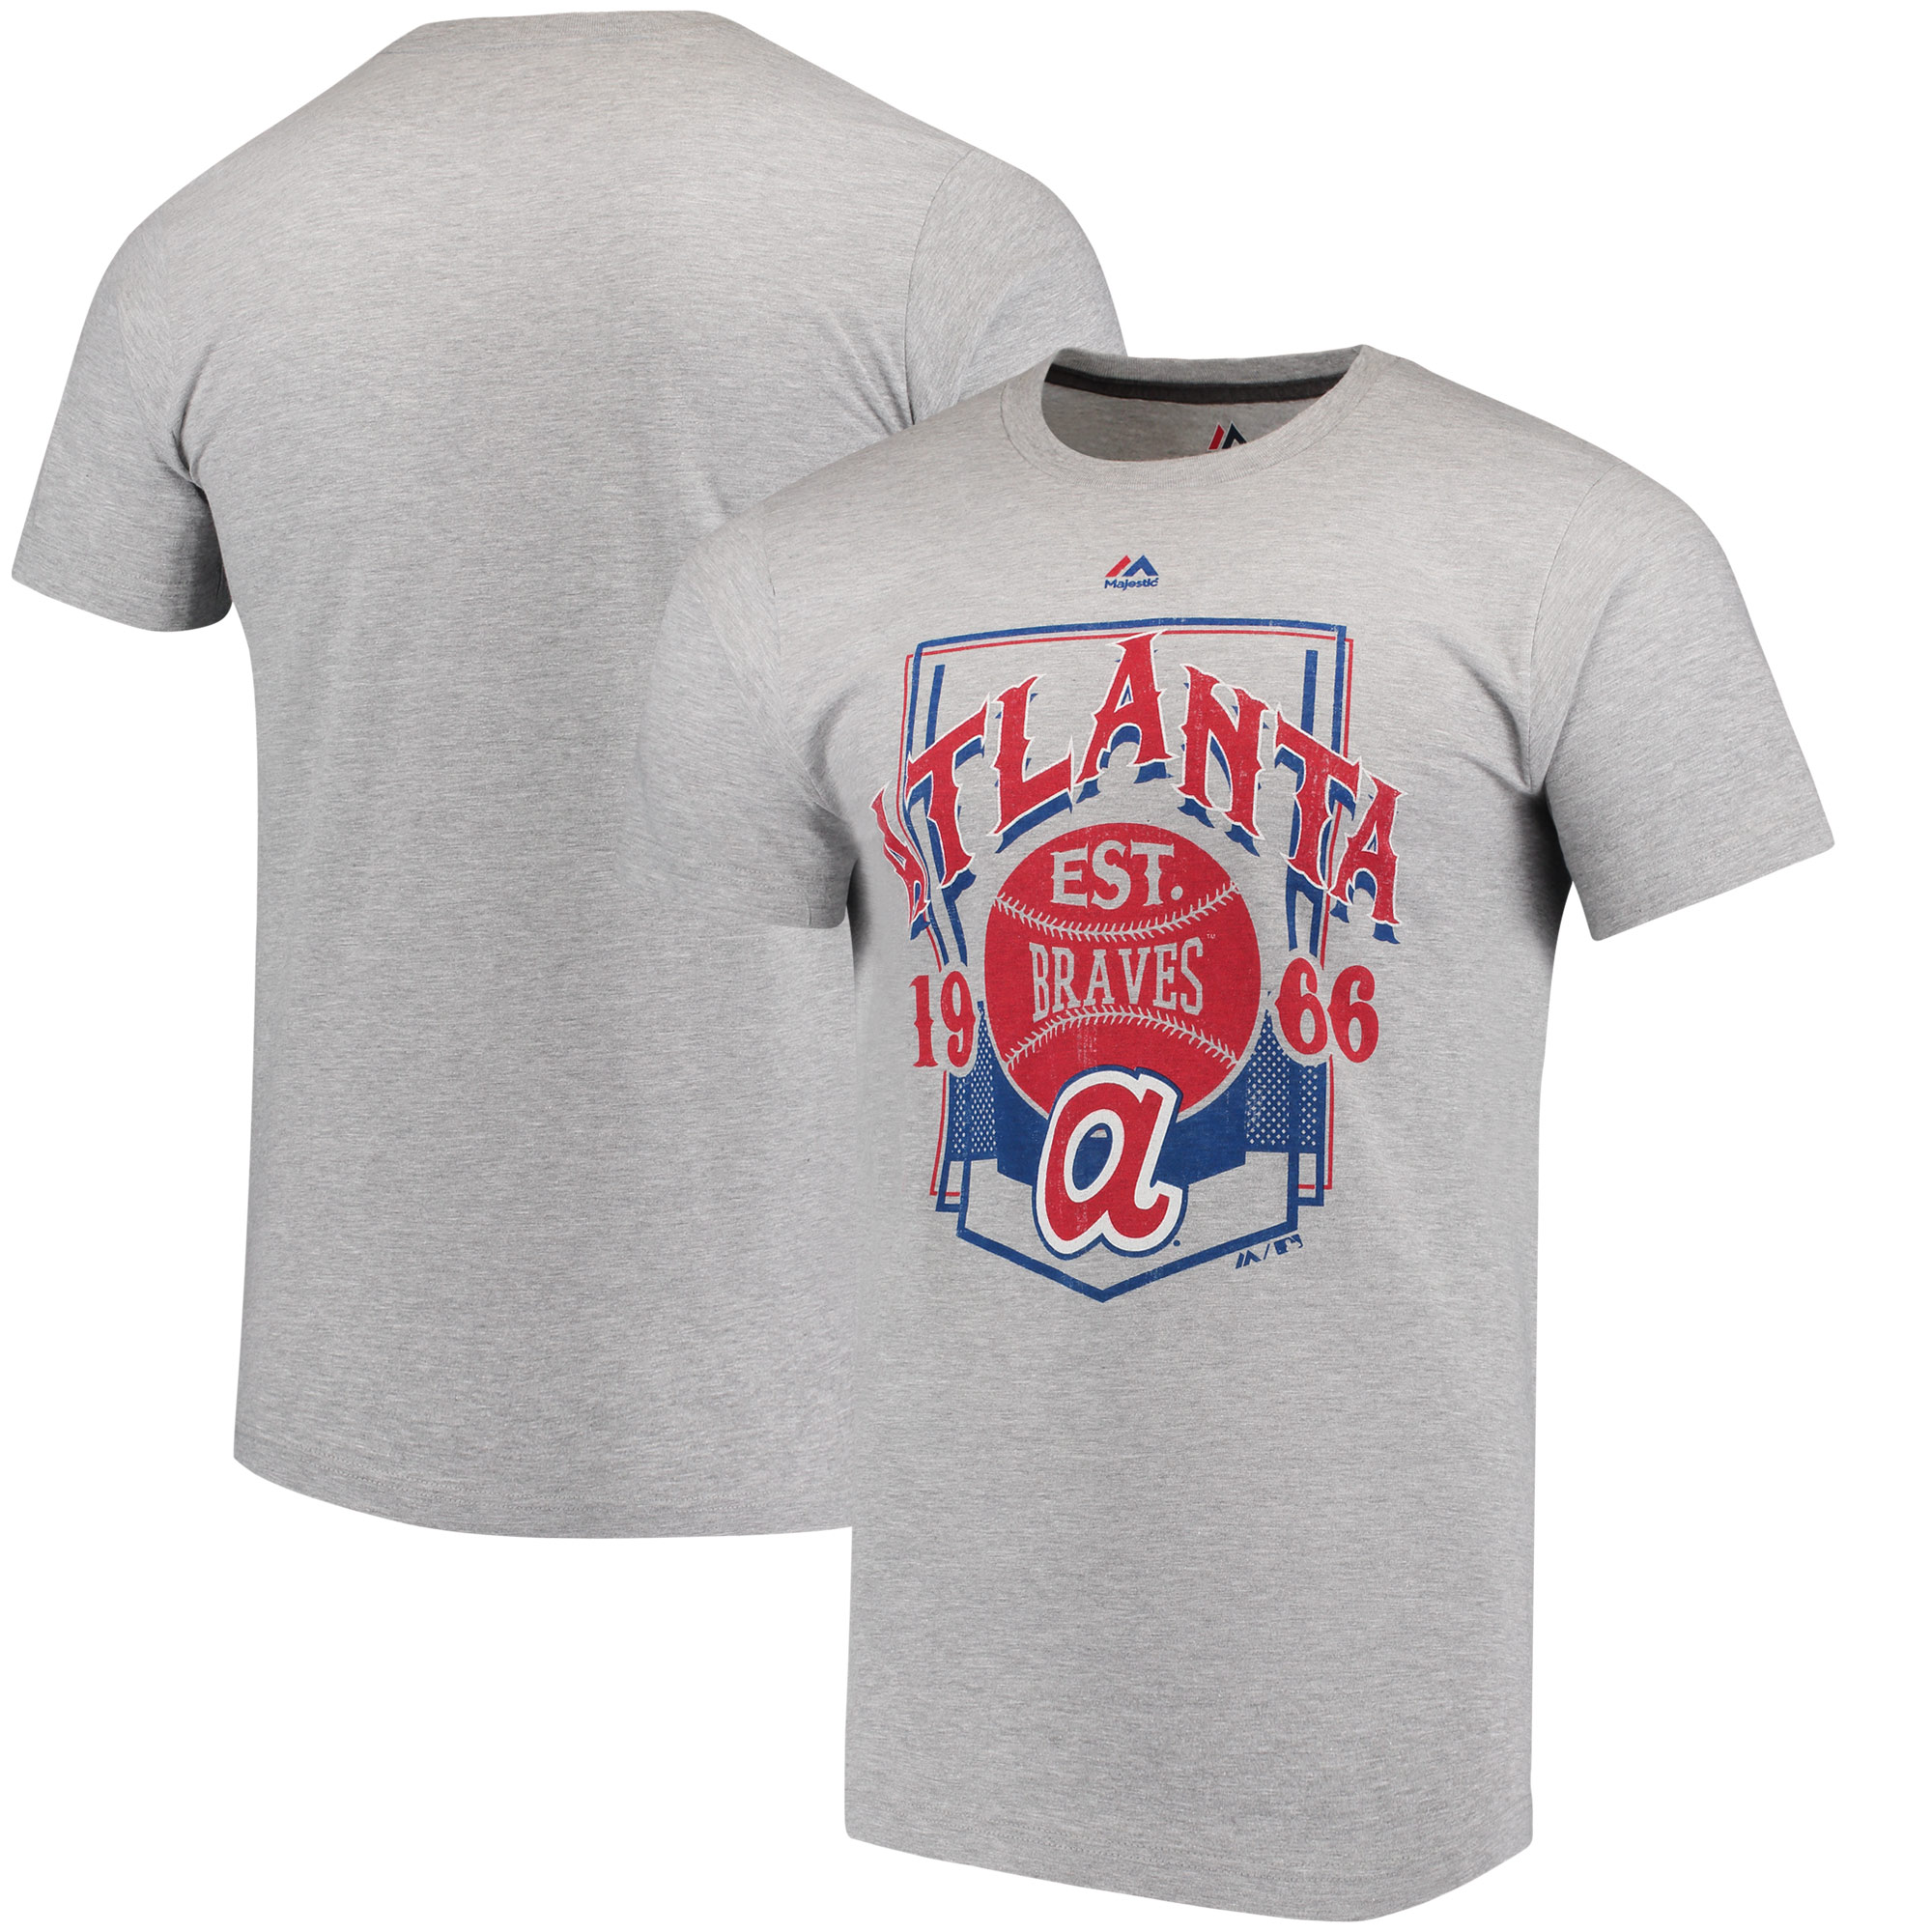 Atlanta Braves Majestic Cooperstown Collection Vintage Style T-Shirt - Gray